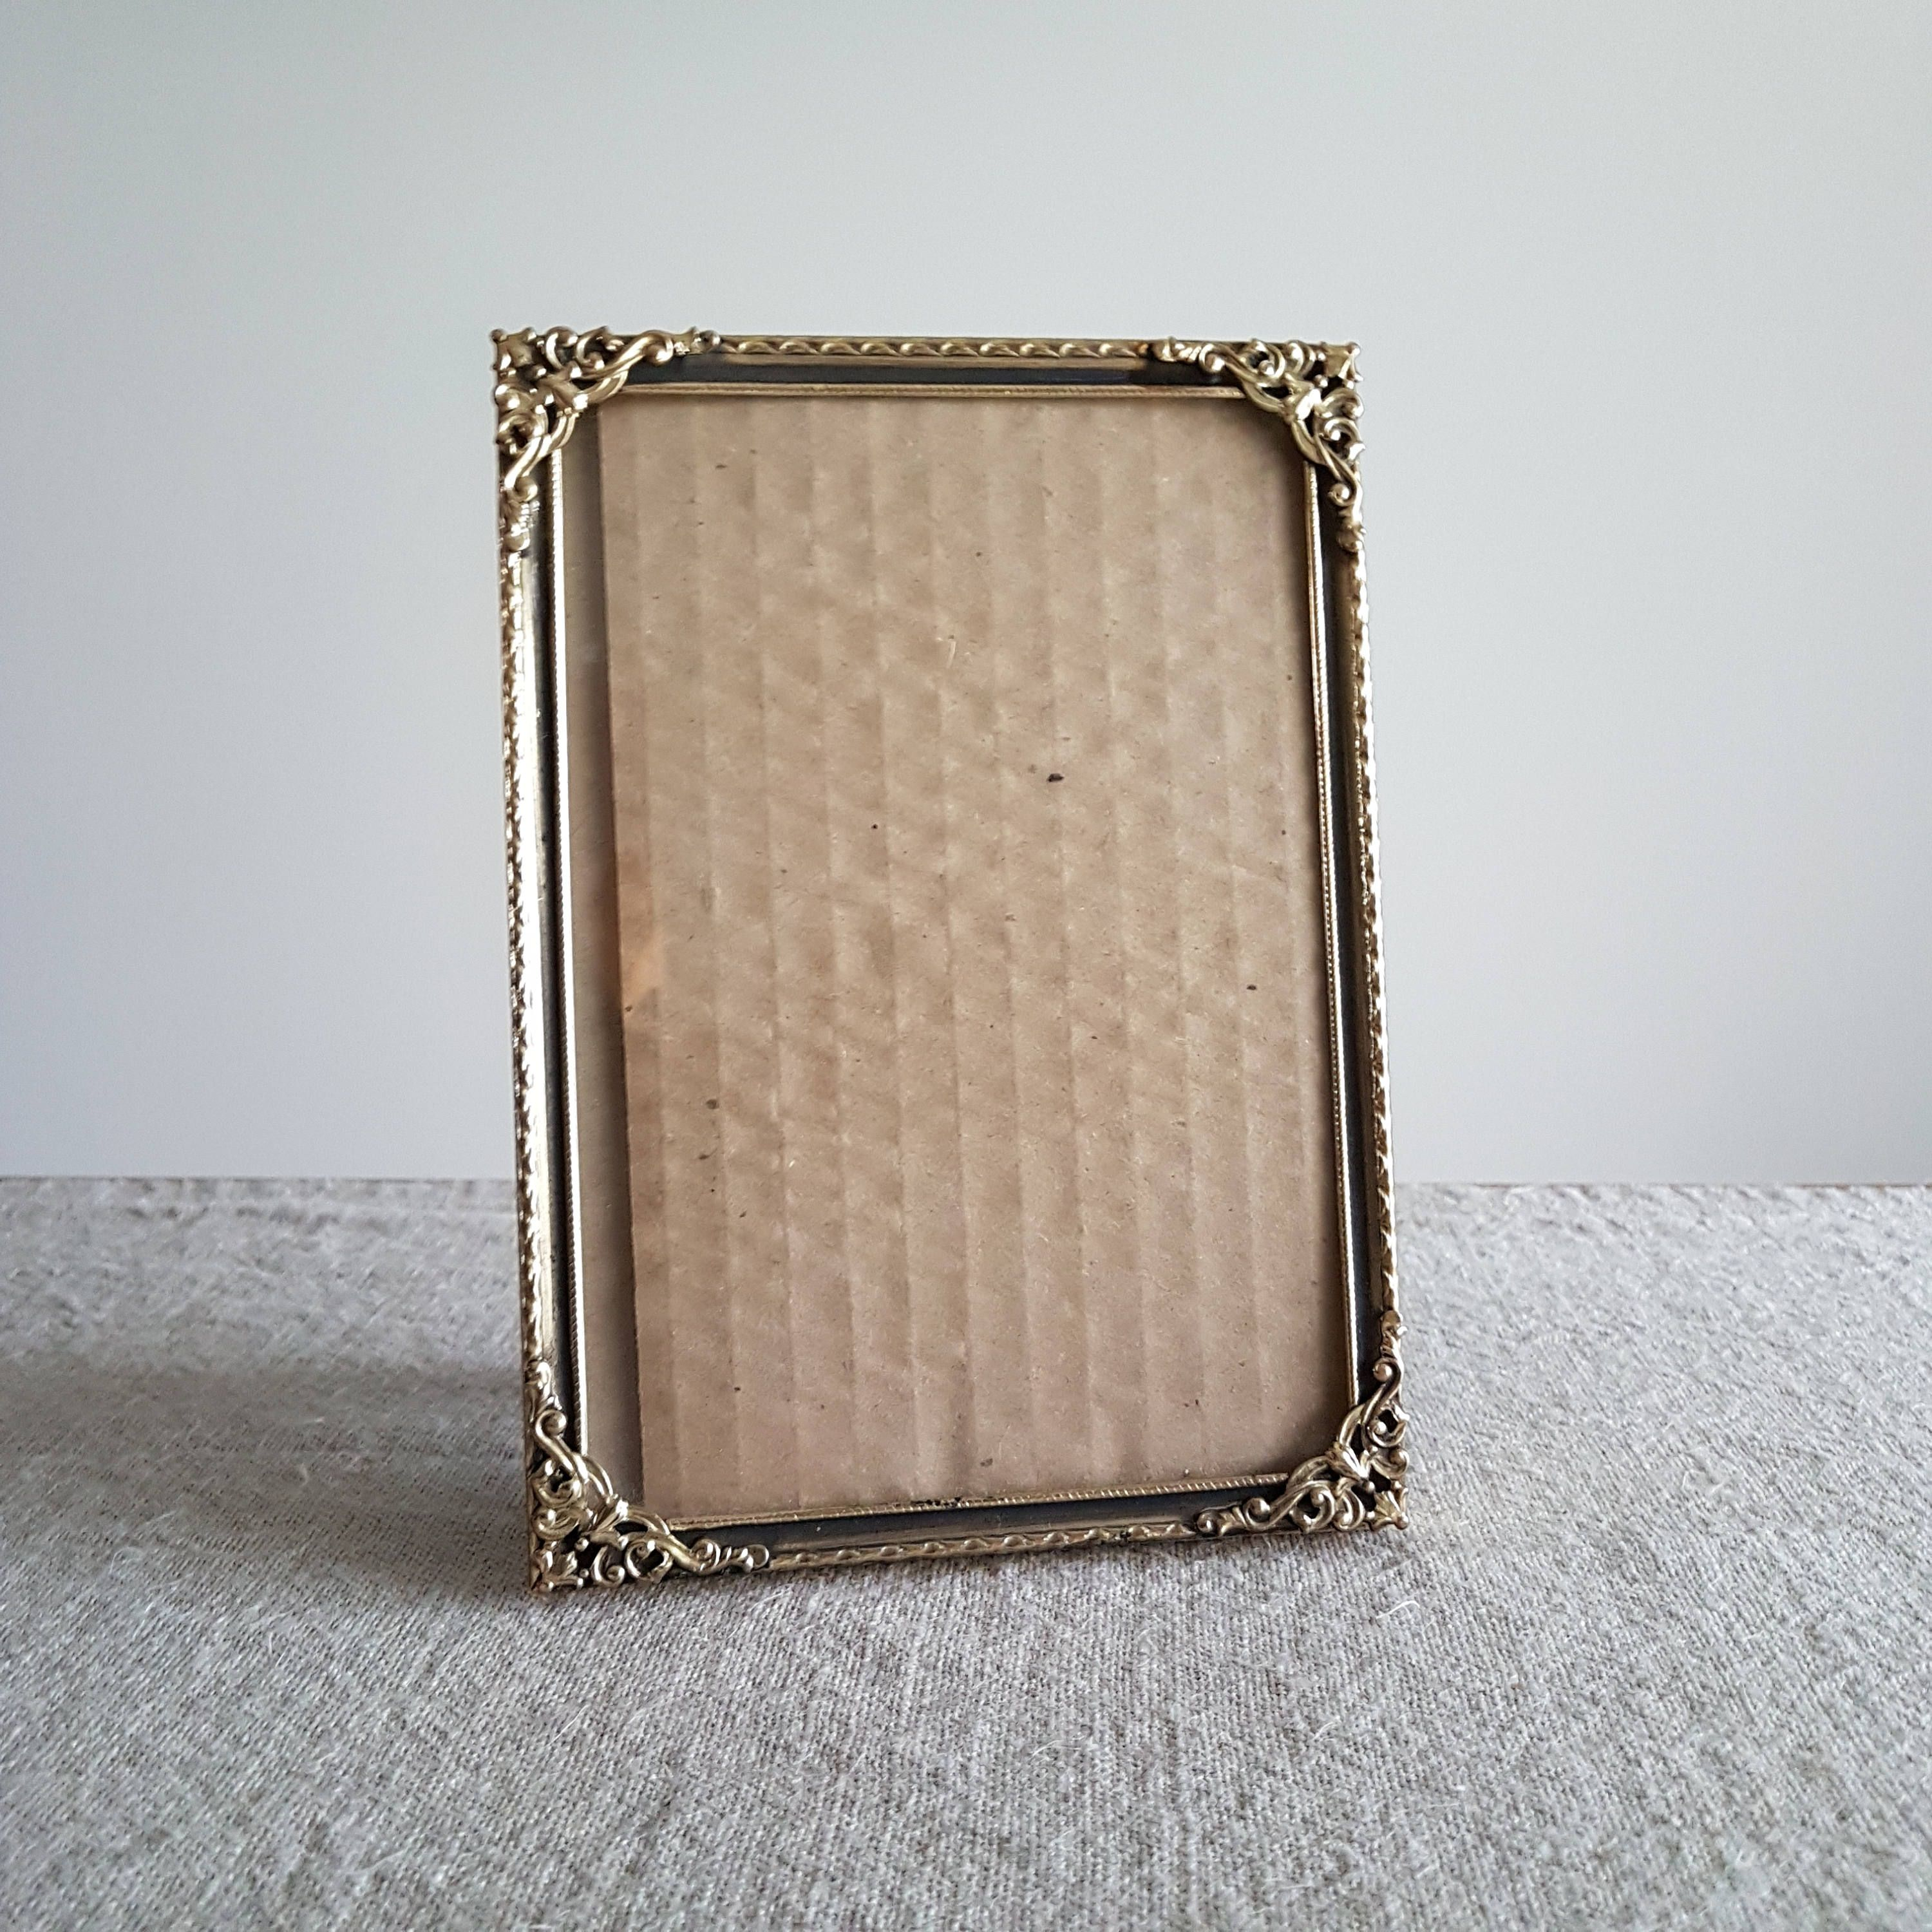 5 x 7 gold tone black metal picture frame w ornate corner 5 x 7 gold tone black metal picture frame w ornate jeuxipadfo Image collections